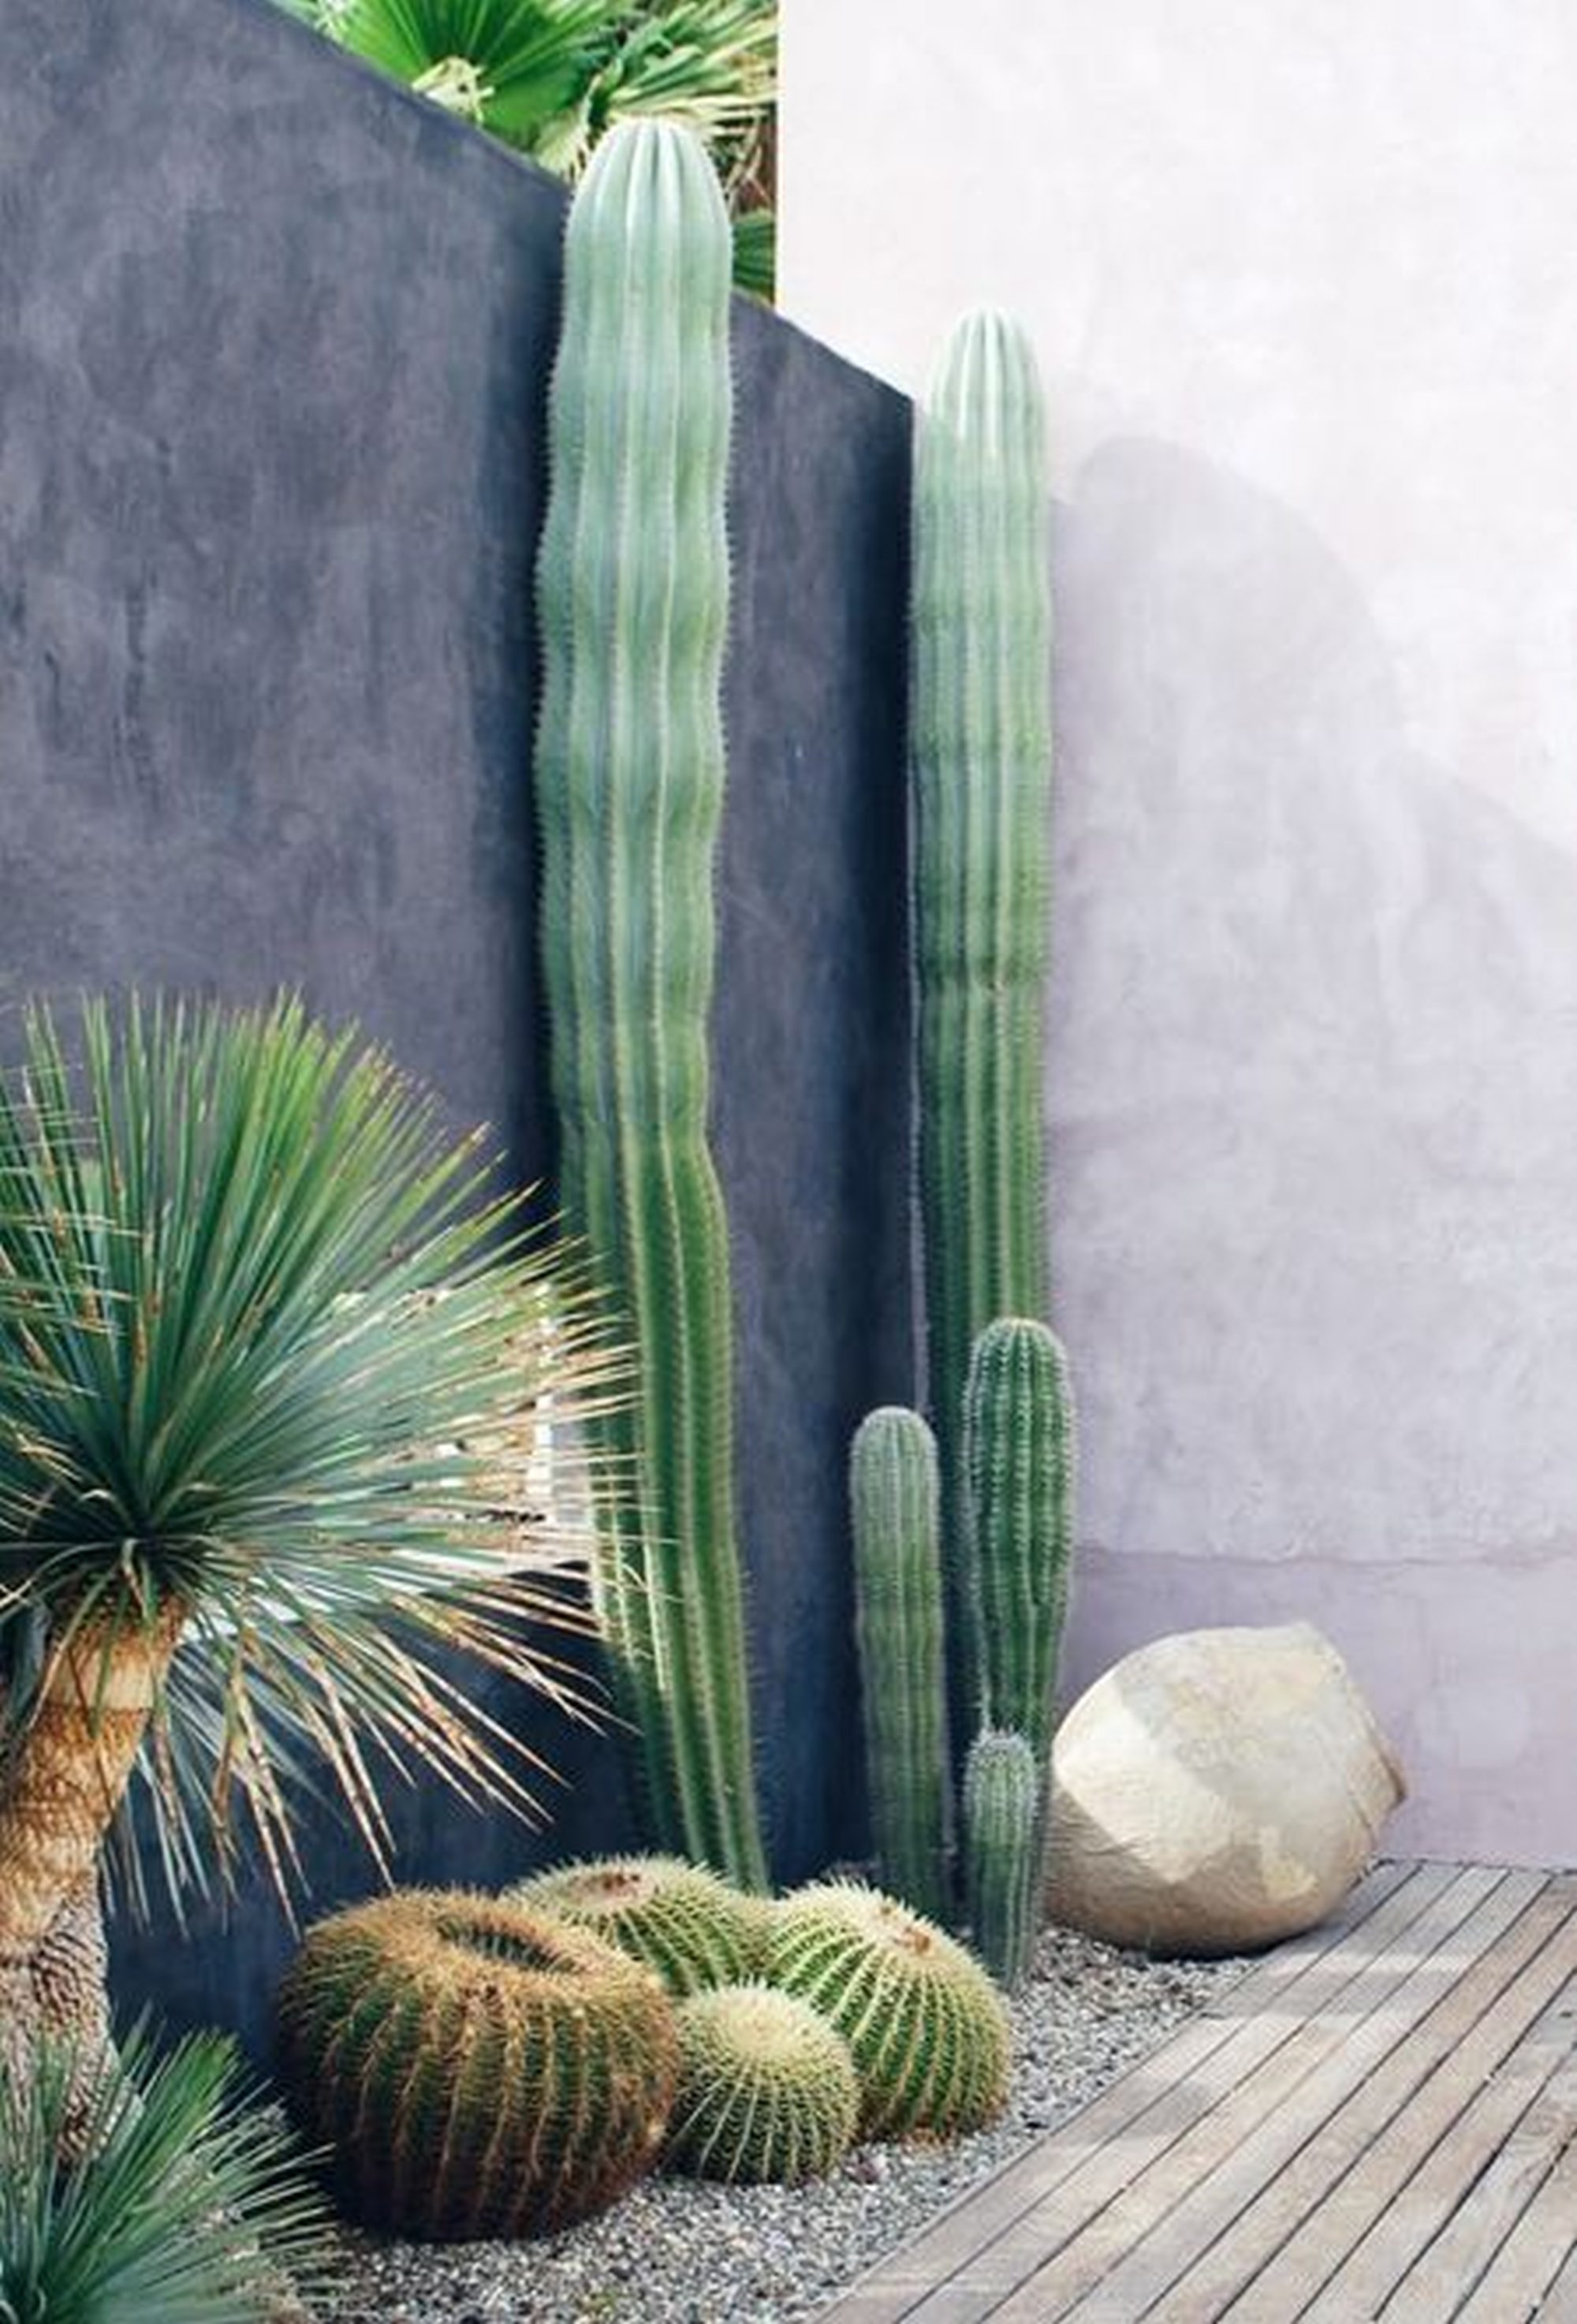 atr vete con los cactus 15 inspiradoras decoraciones para patios y terrazas. Black Bedroom Furniture Sets. Home Design Ideas